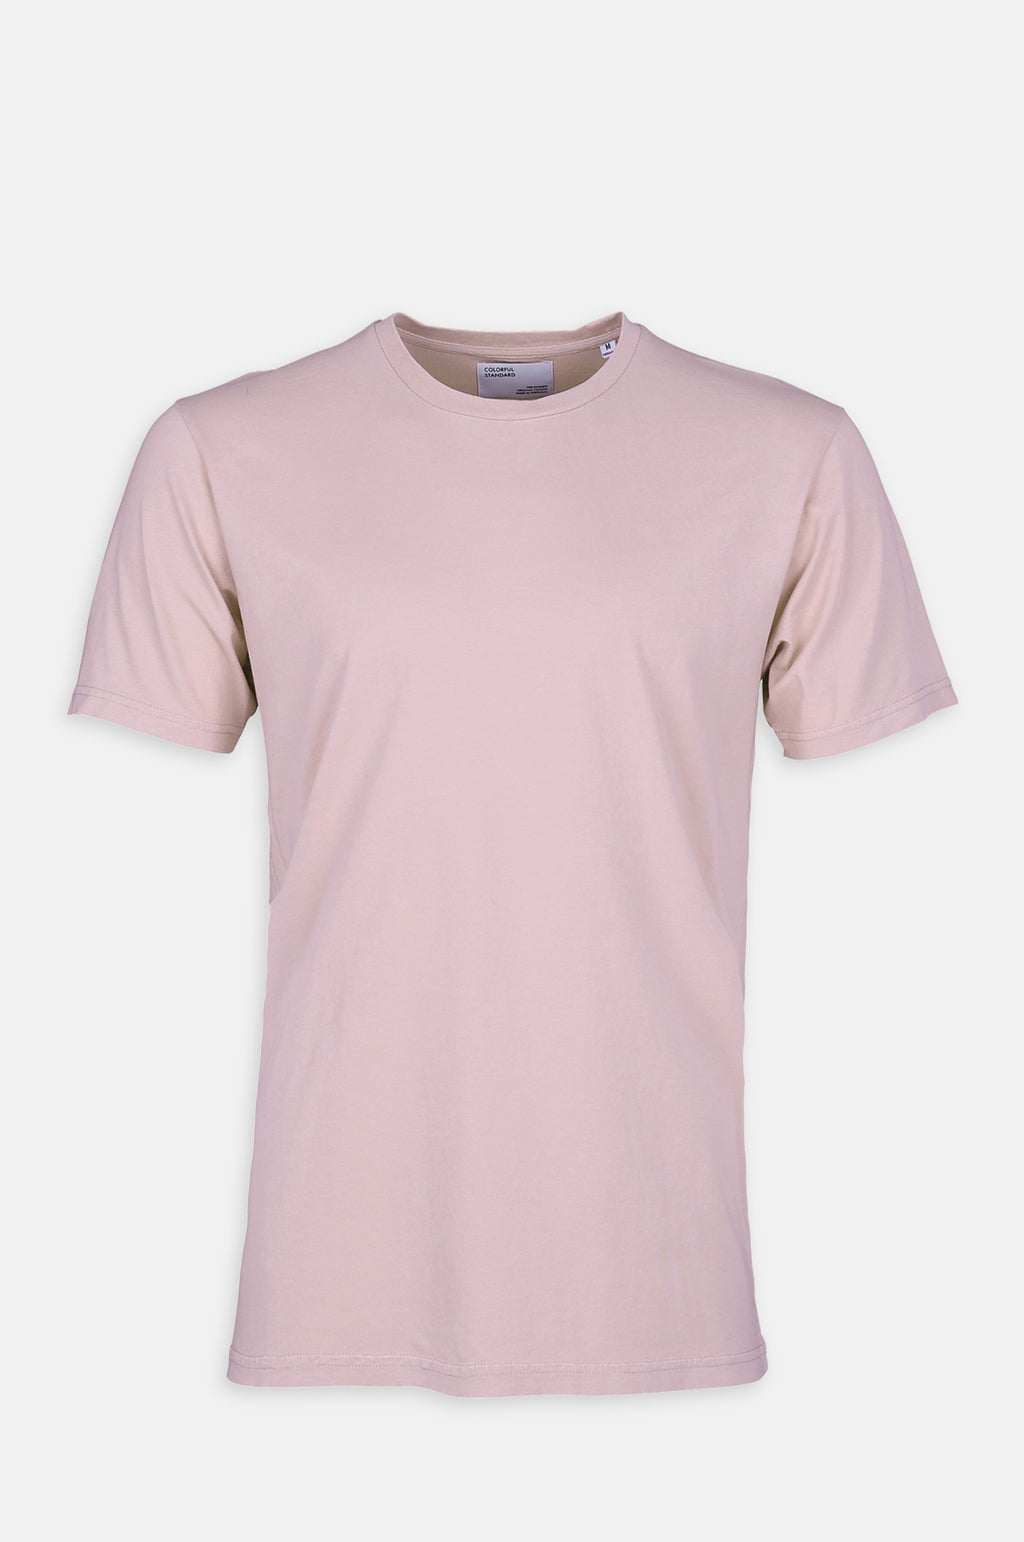 Classic Organic T Shirt in Faded Pink